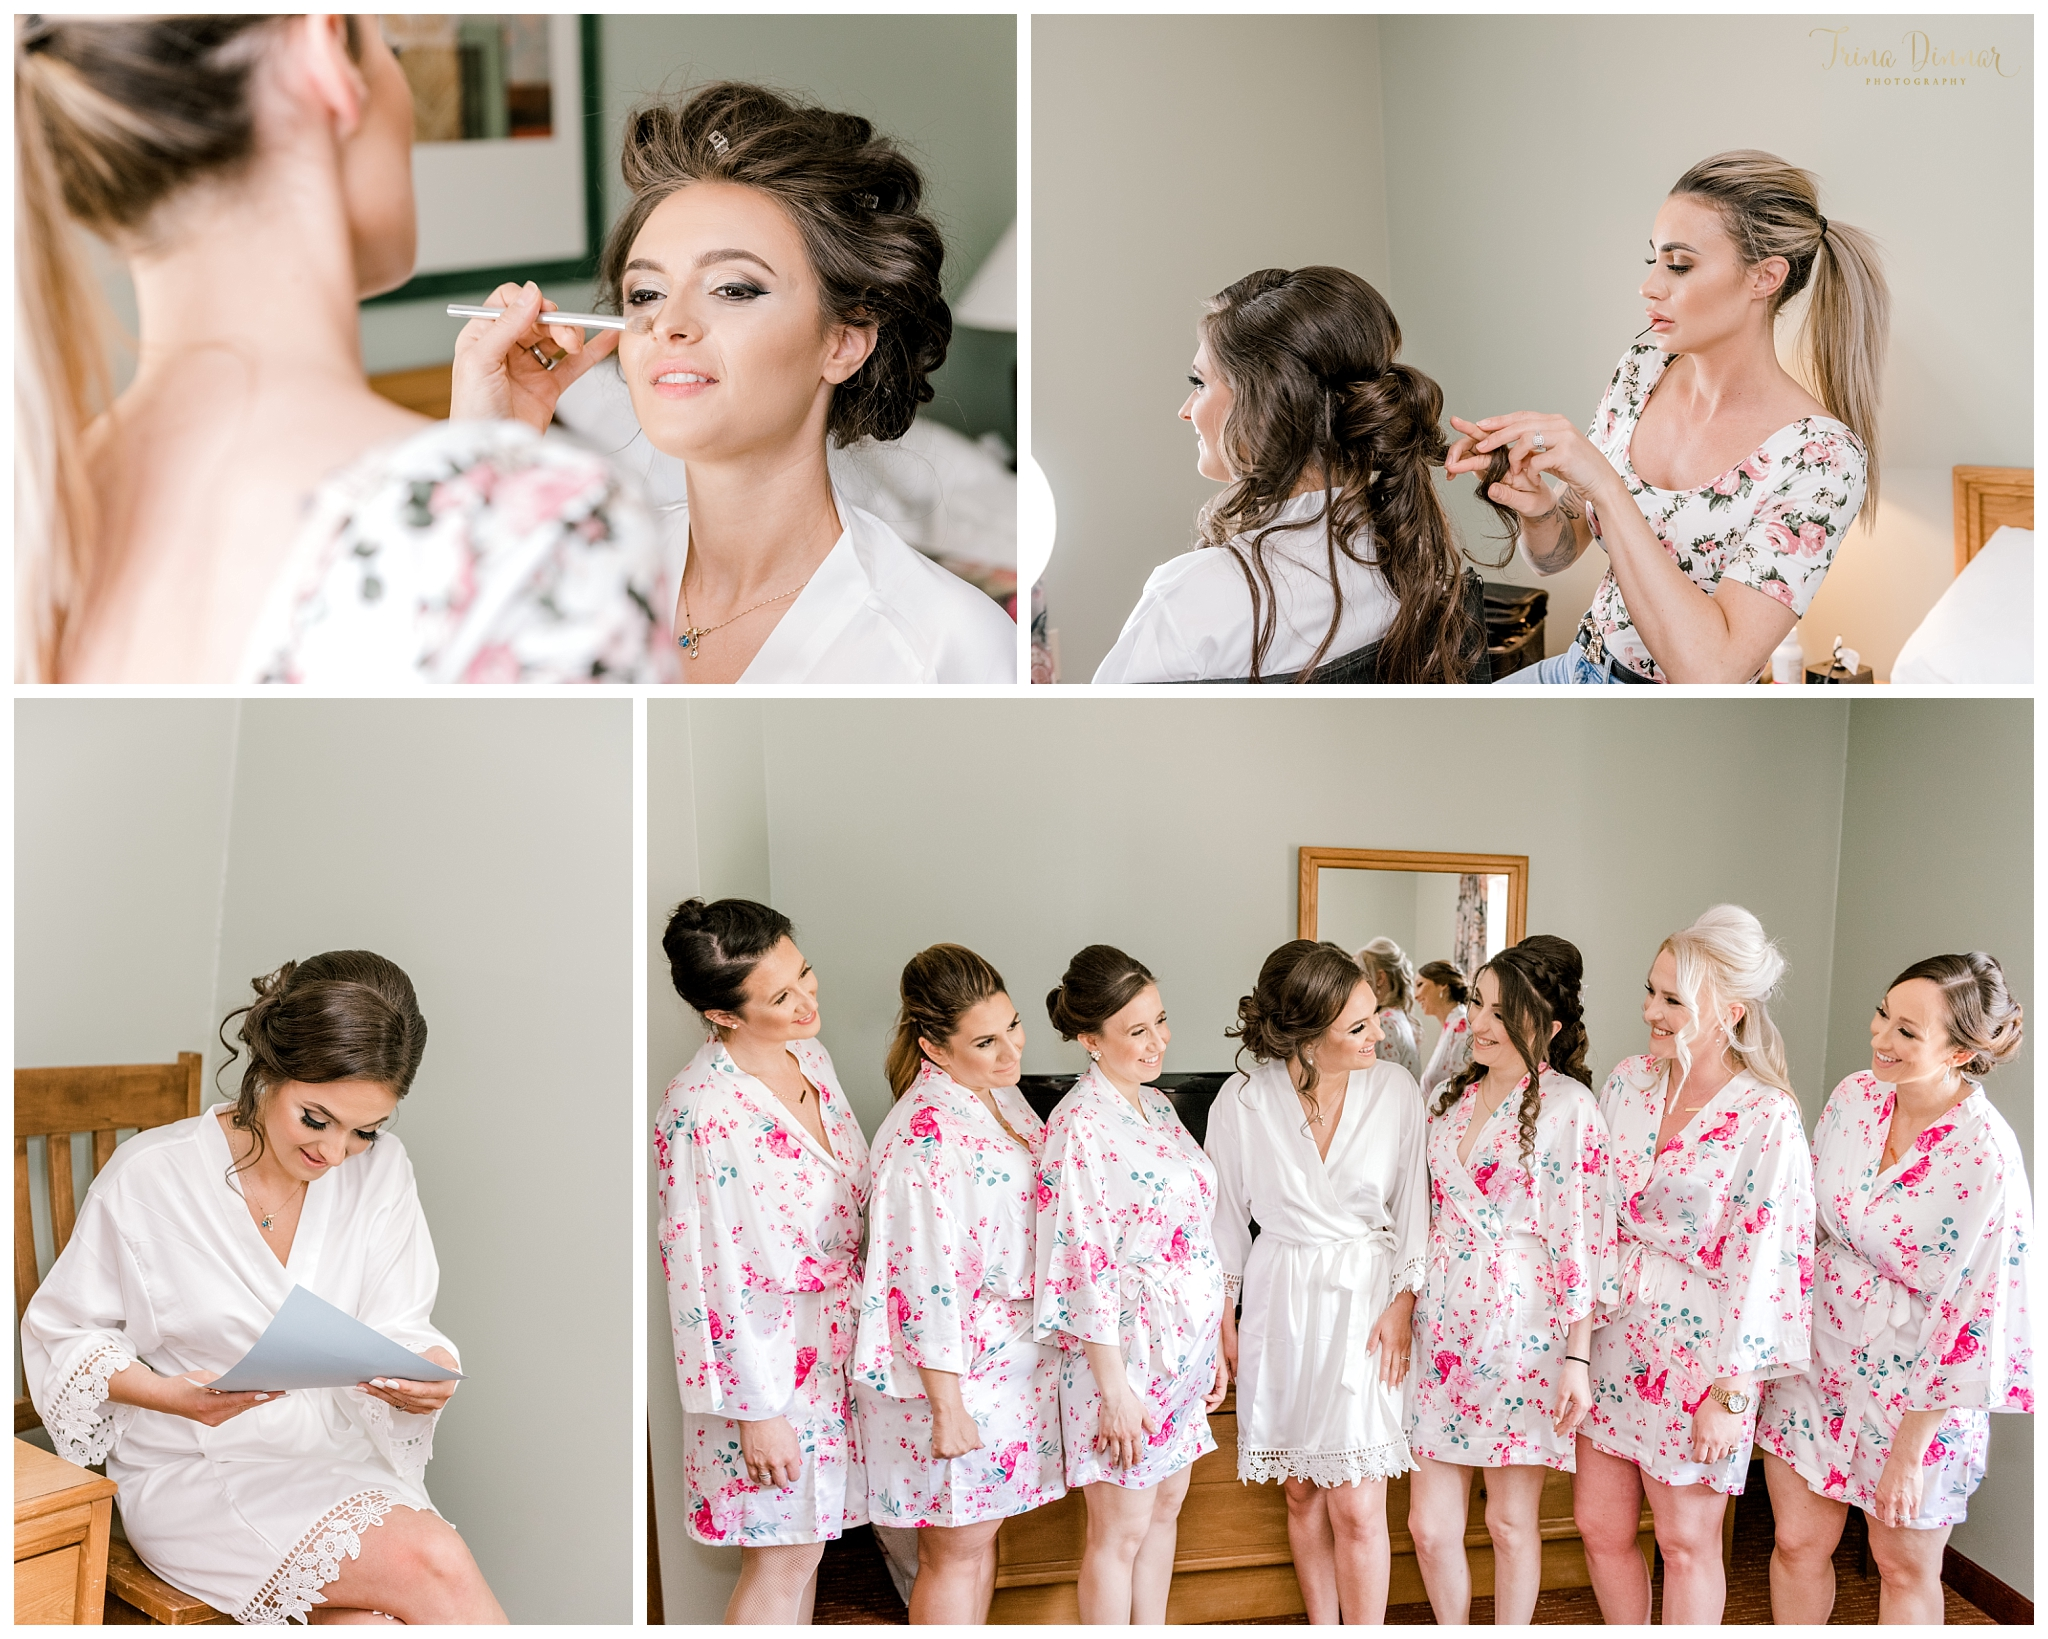 Bride and bridesmaids at Grand Summit Hotel's Bridal Suite in Newry, ME.